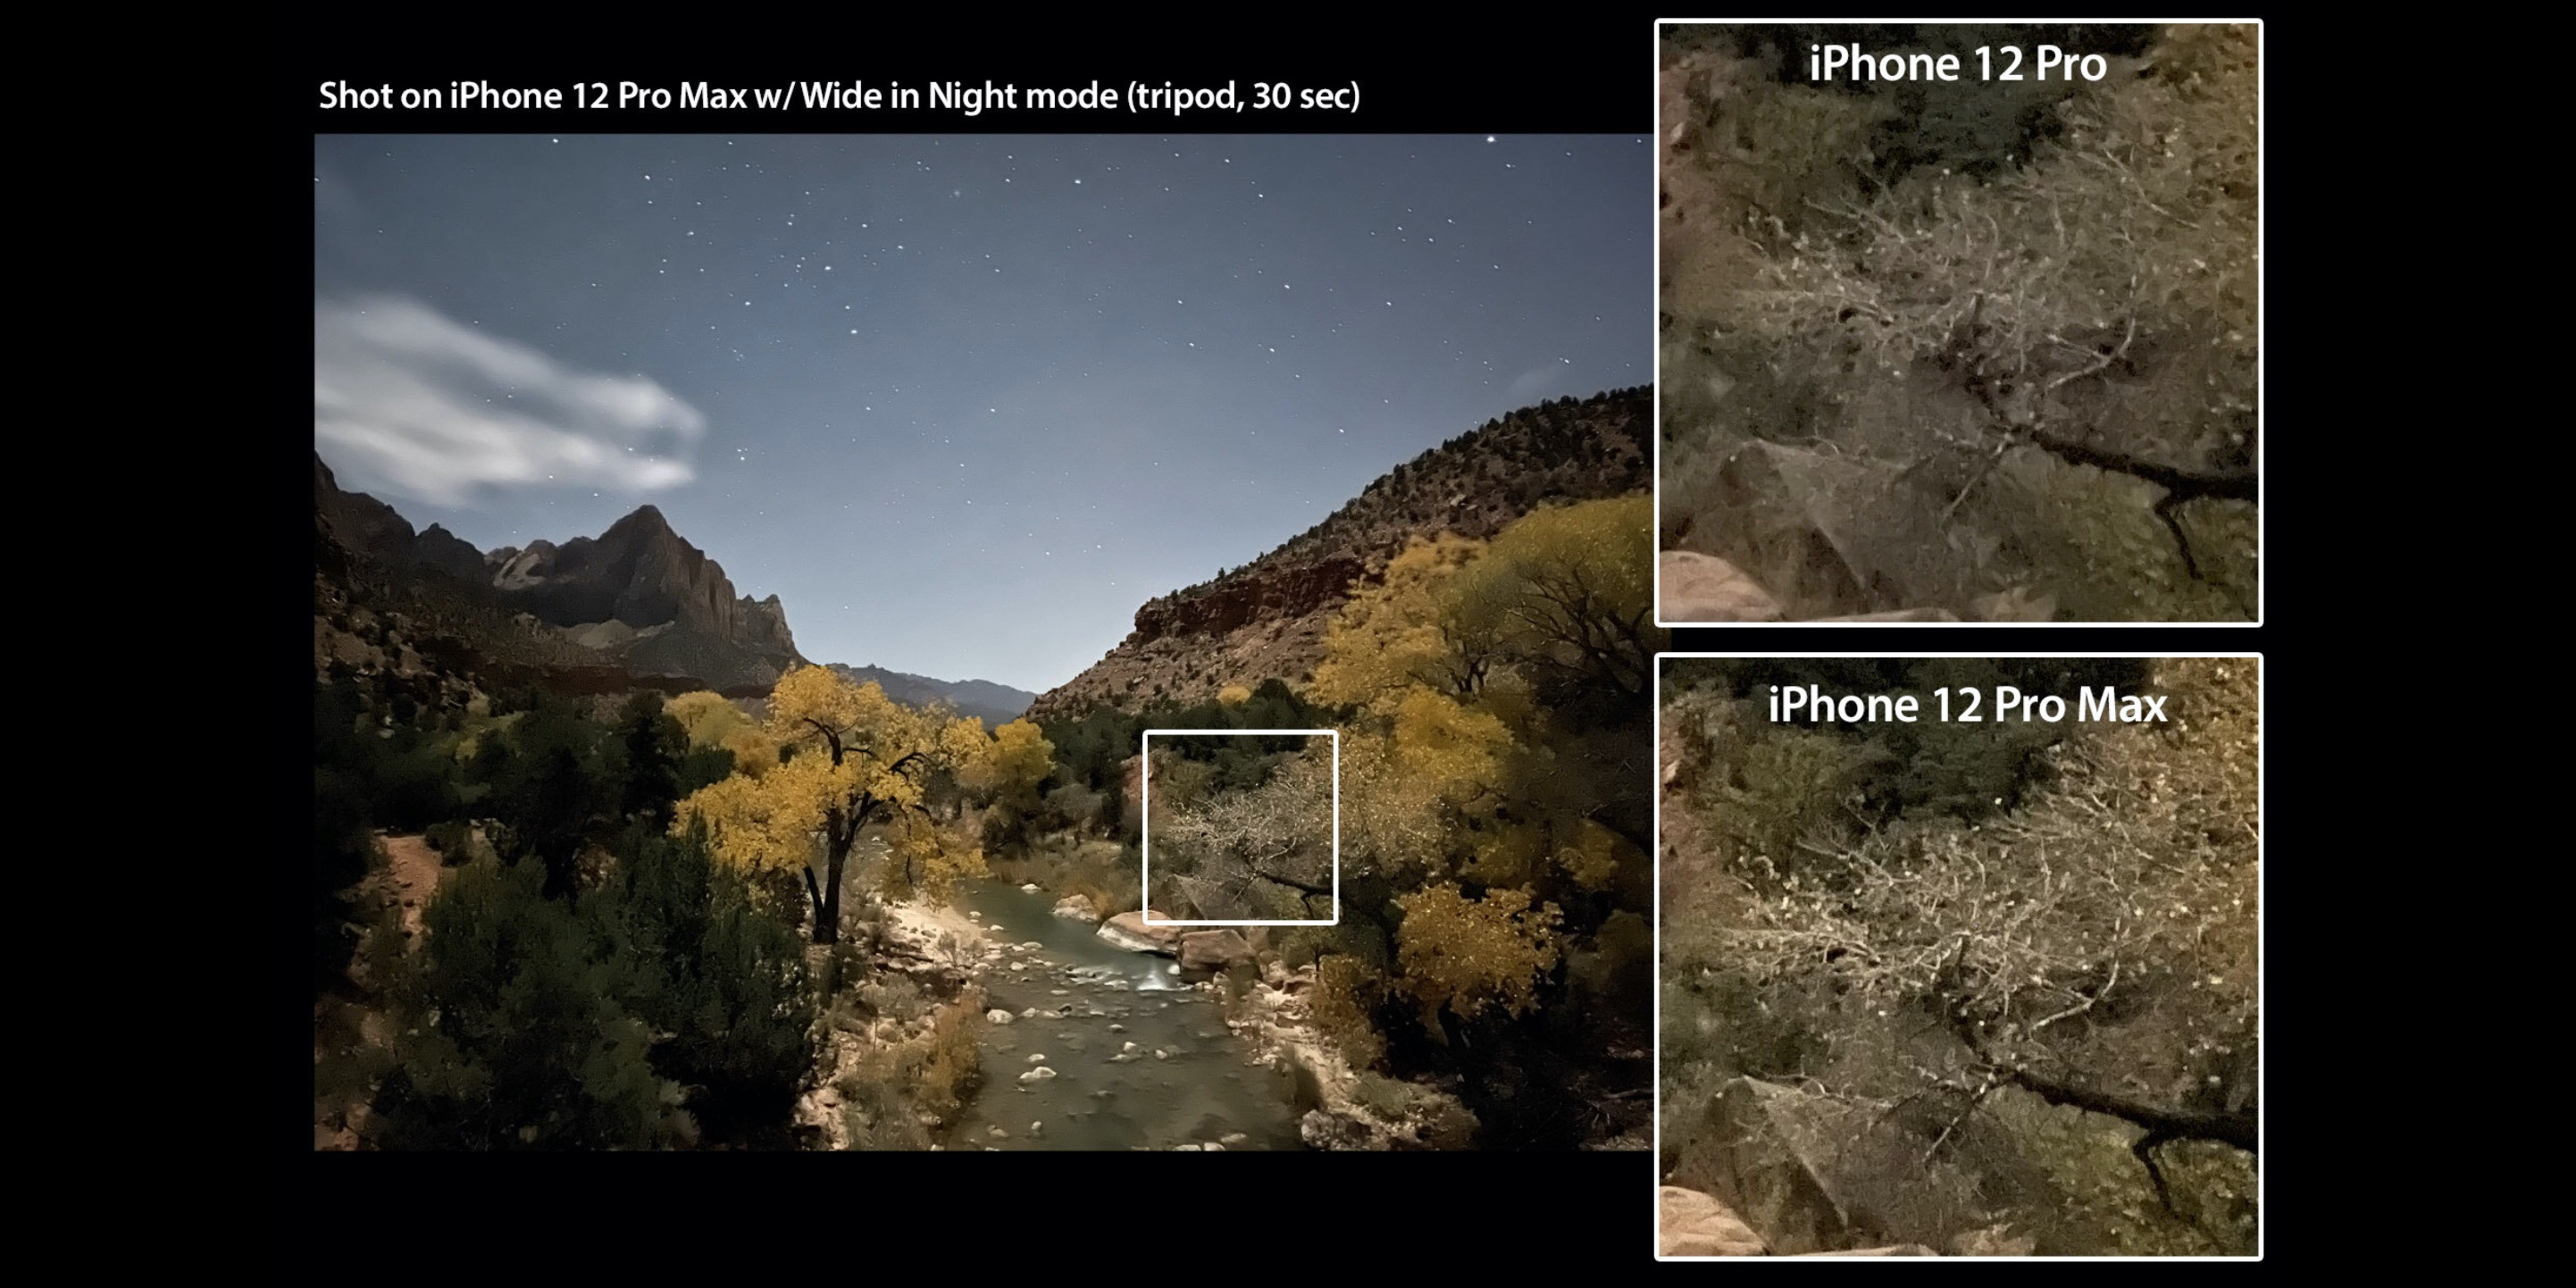 Gallery: Travel photographer Austin Mann compares iPhone 12 Pro and iPhone 12 Pro Max cameras – 9to5Mac